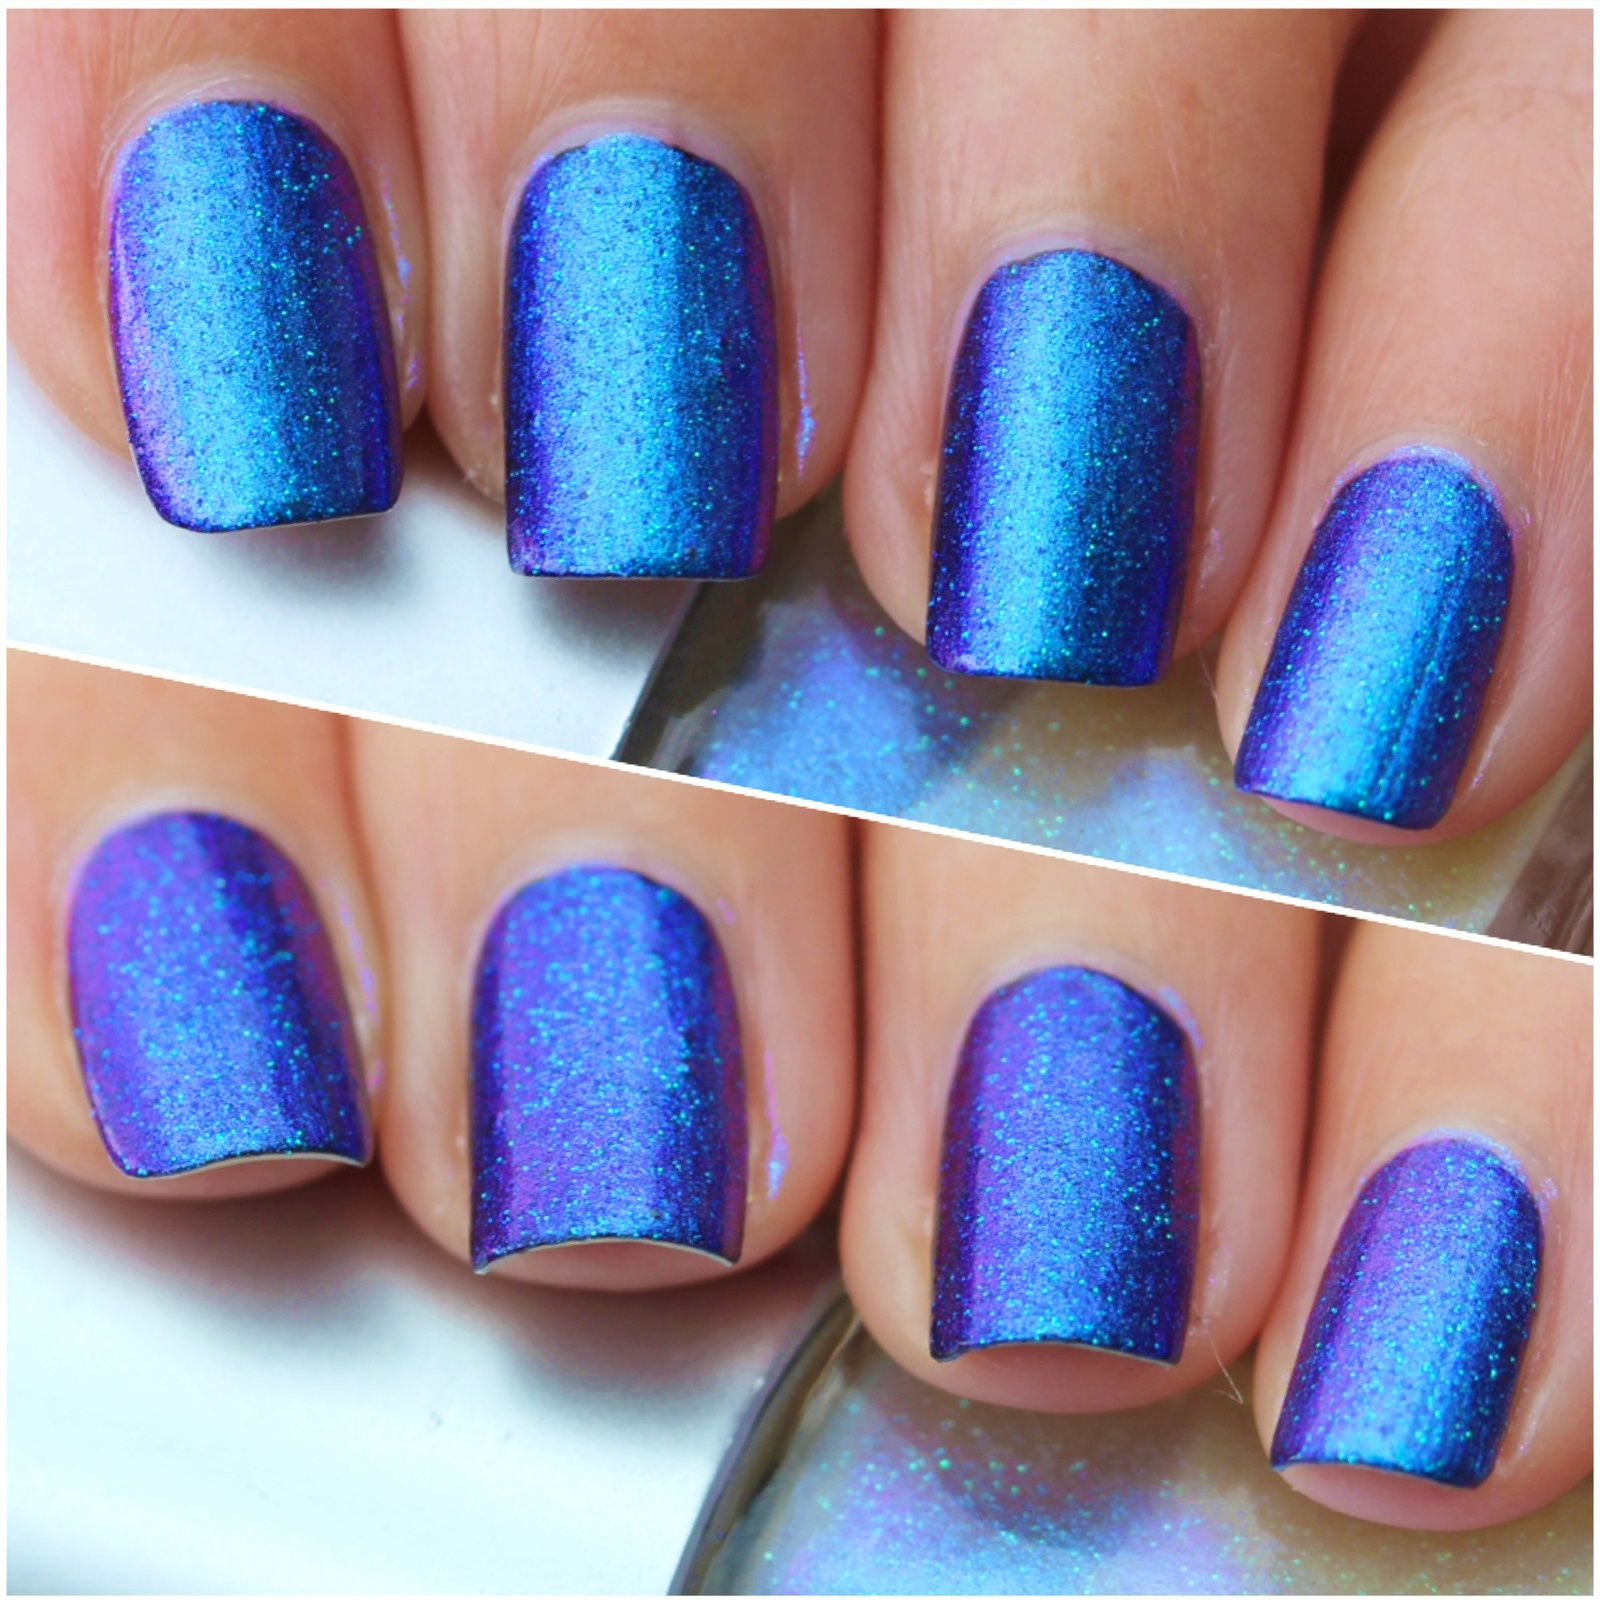 Pink Dipsy Bulle Black Hole is a Cyan, blue and purple multichrome with multichrome micro glitter that shift from green to blue.